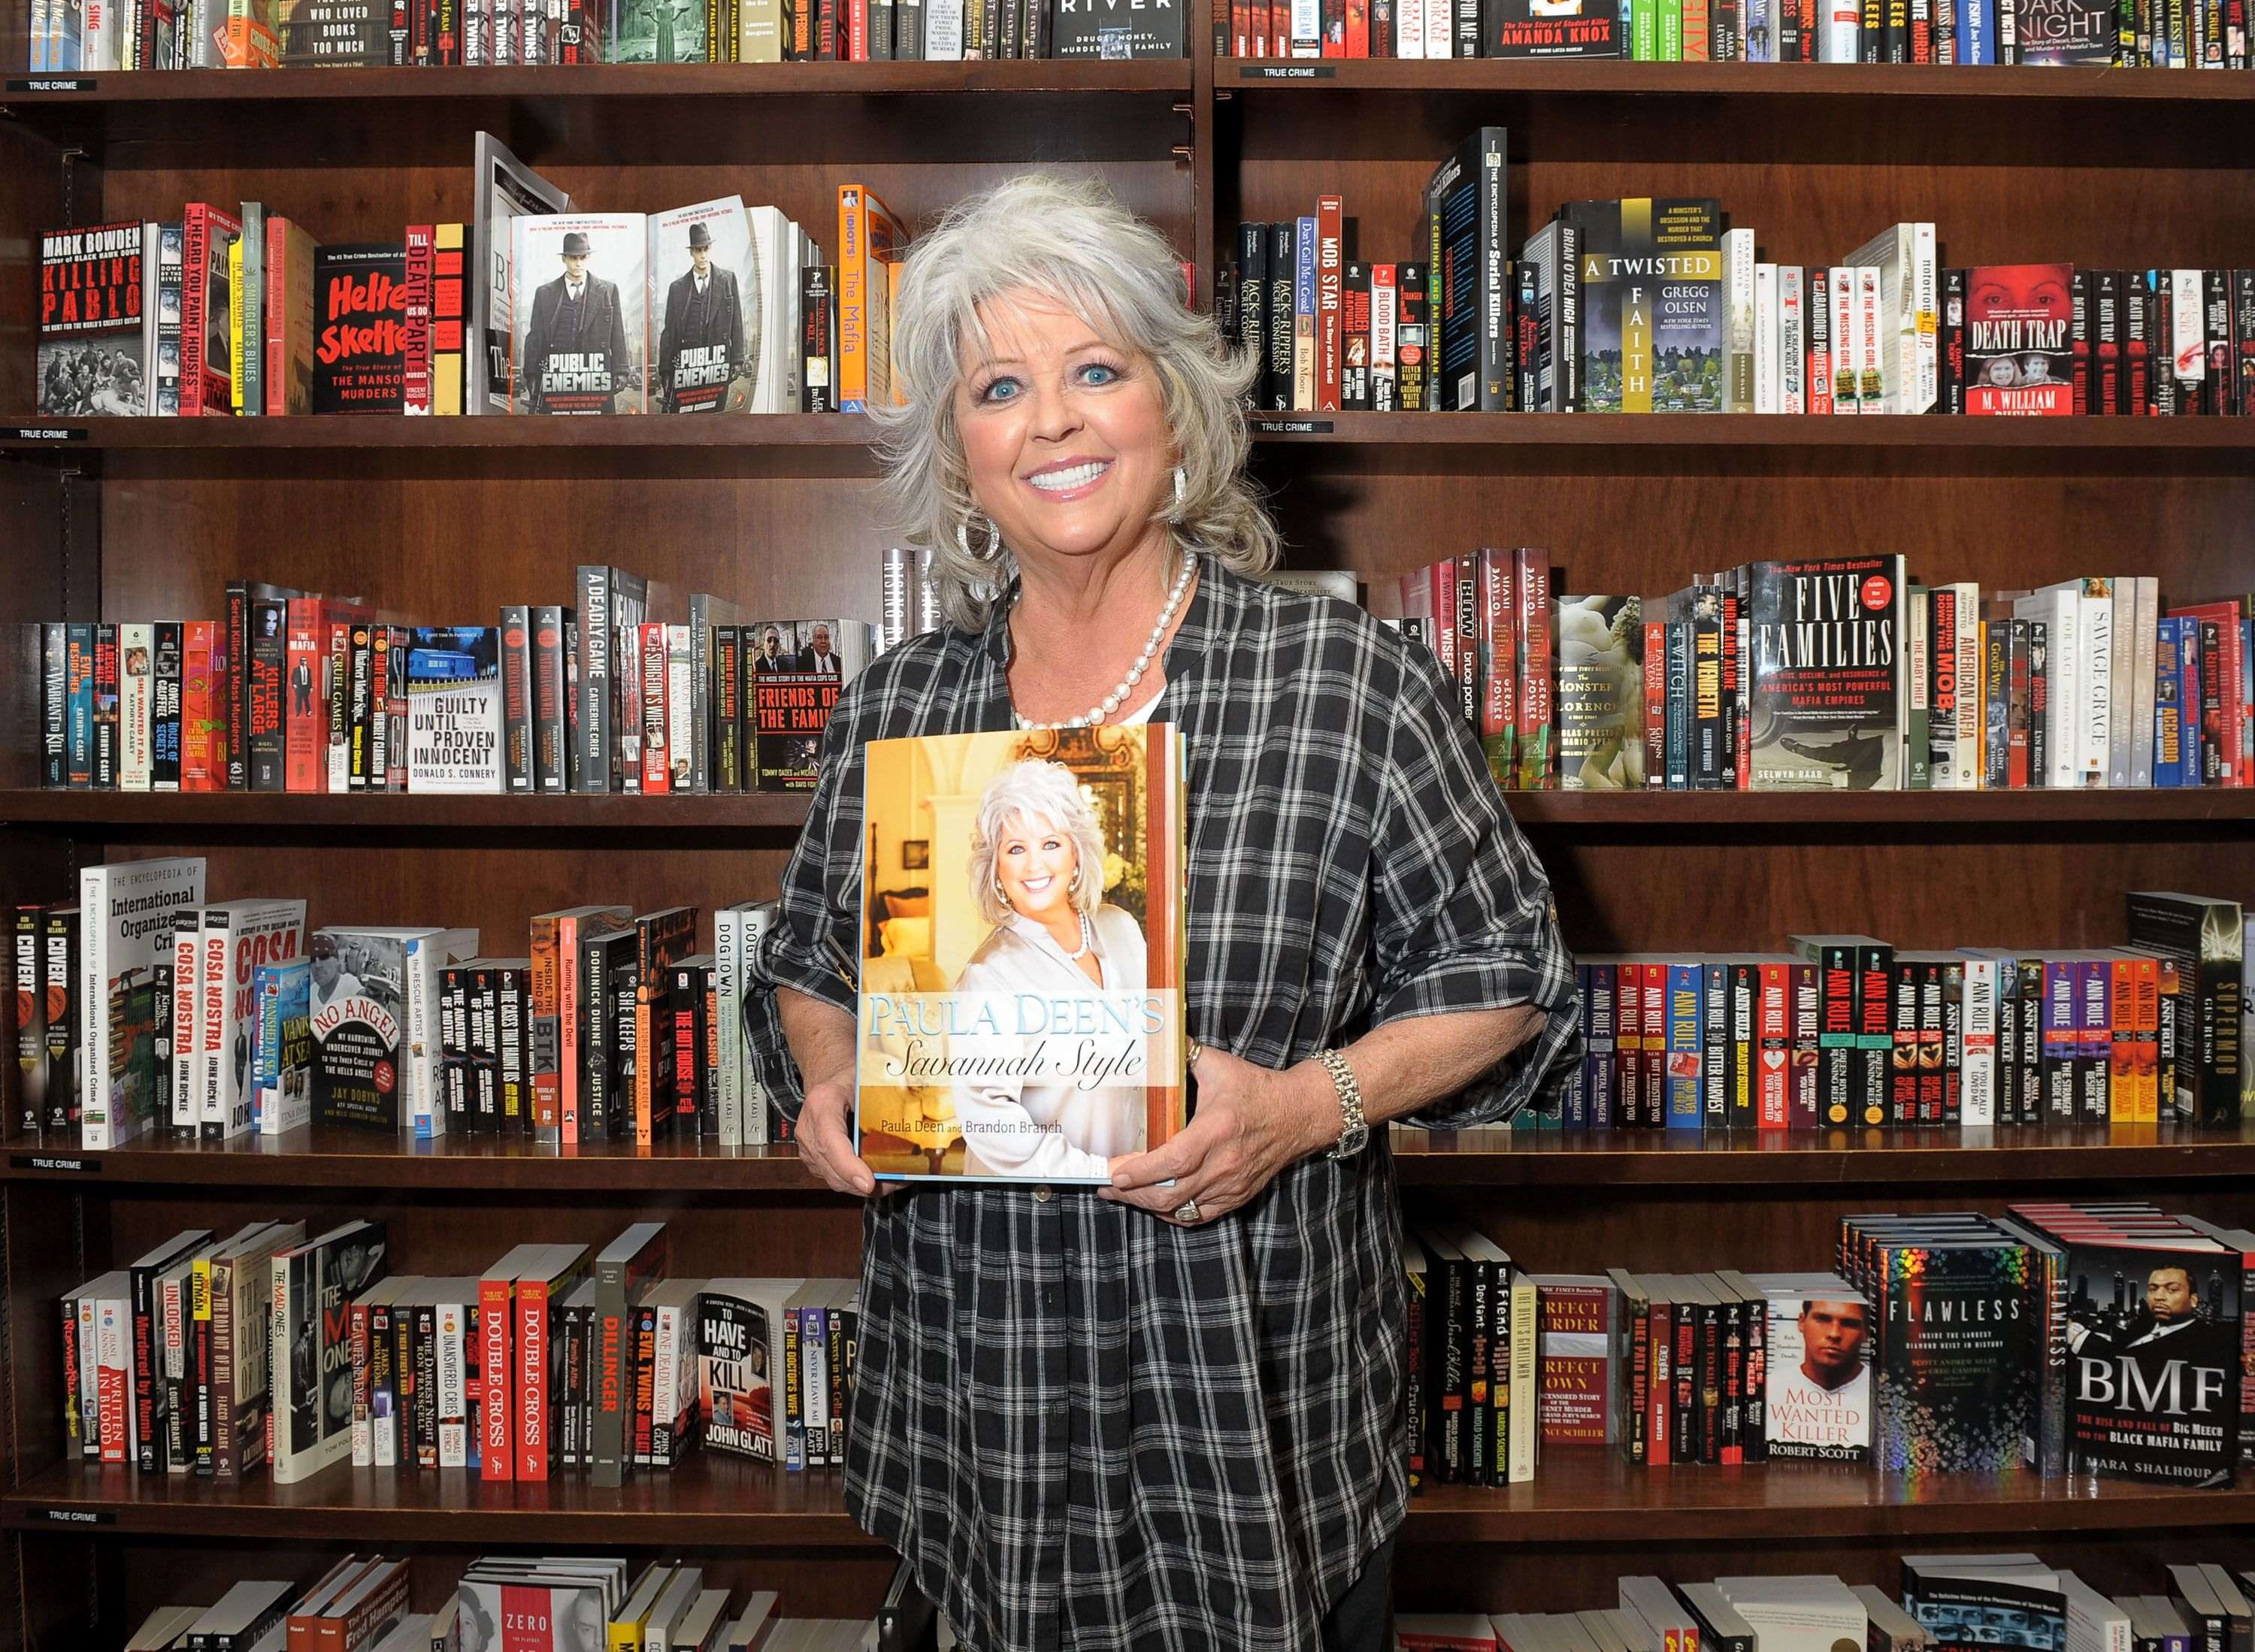 """Paula Deen at the launch of herdesign book """"Paula Deen's Savannah Style"""" in 2010 in New York City 